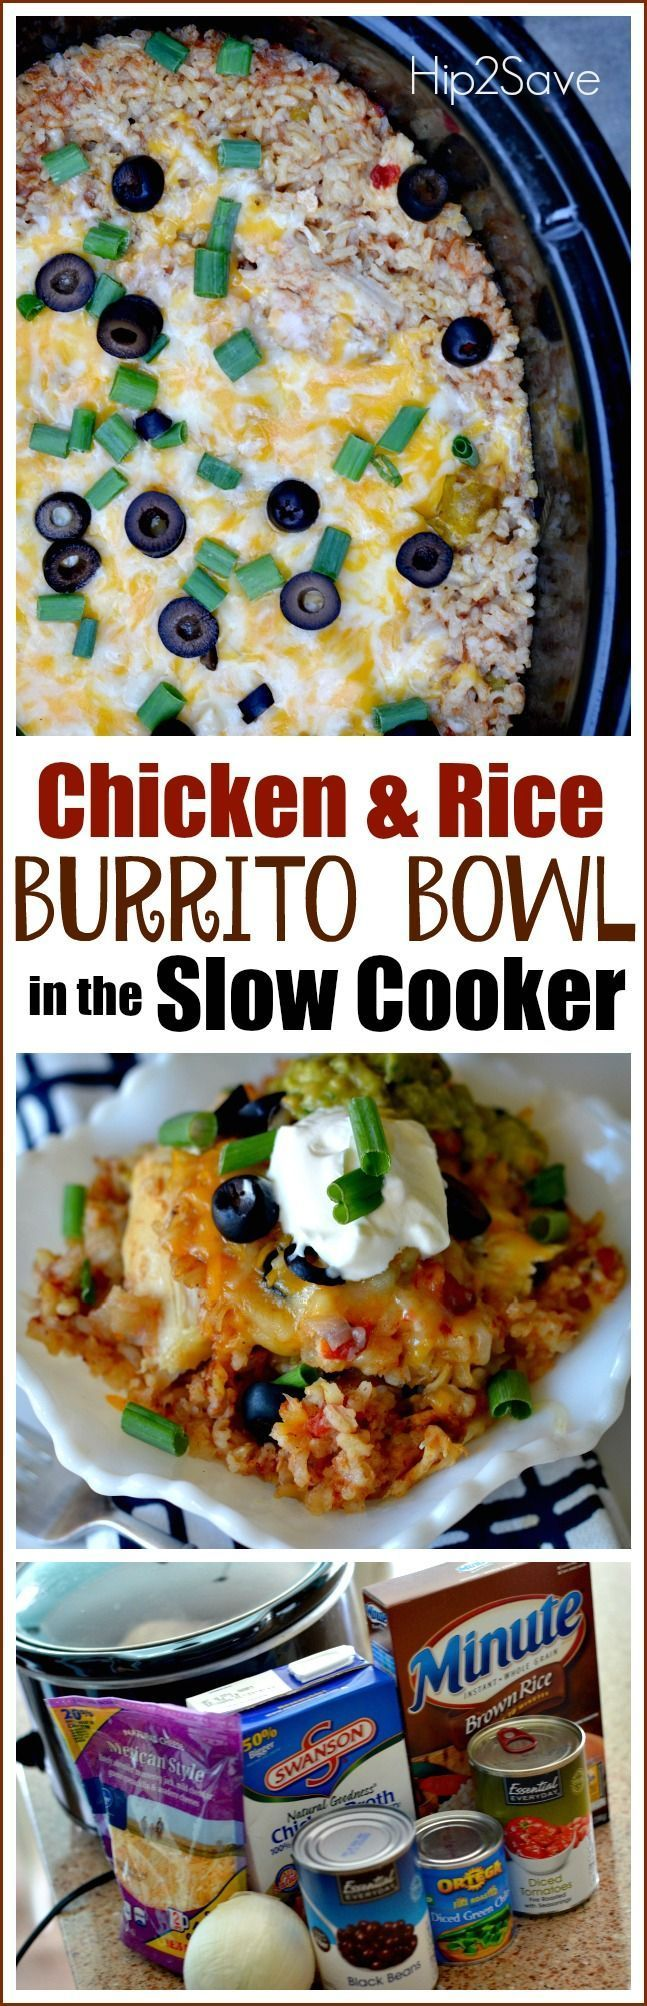 If you�re looking for an easy and crowd pleasing slow cooker meal, try making chicken and rice burrito bowls in the slow cooker!  The chicken gets cooked first in a flavorful broth, then just add in rice about 45 minutes before you�d like to eat and it co